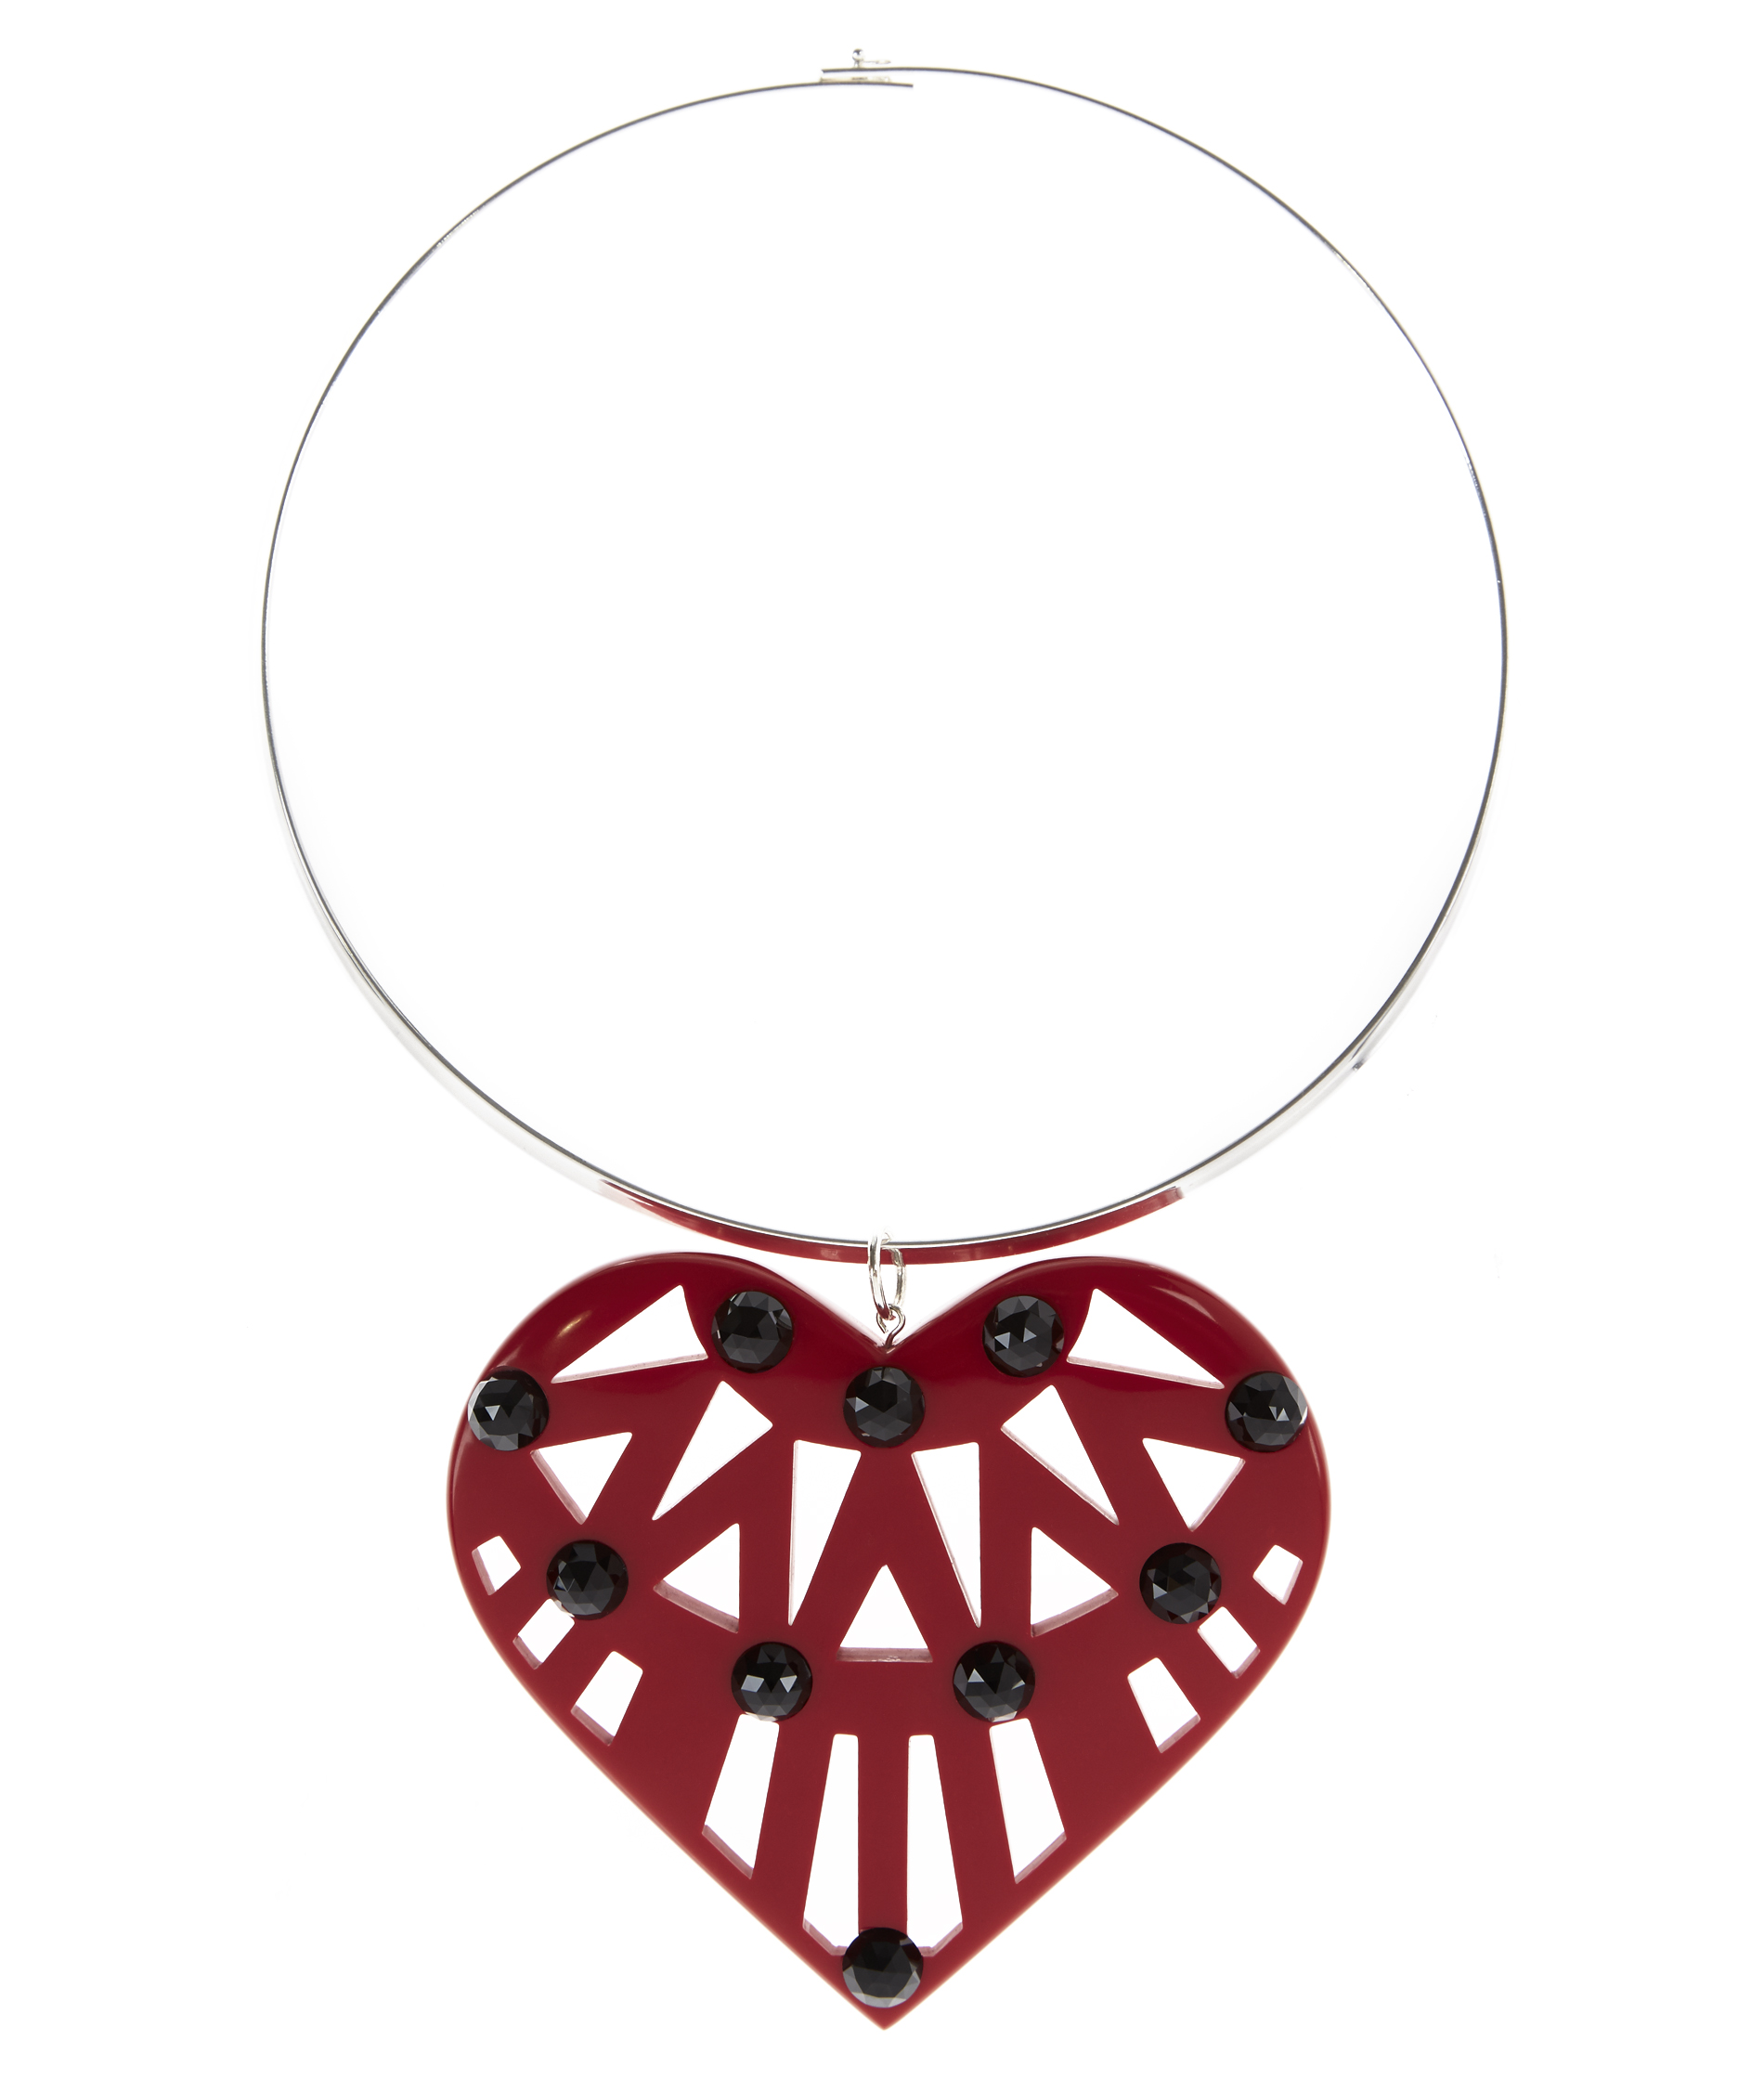 Holly Fulton Hearty Hand-Cast Red Pendant With Swarovski Crystals Necklace